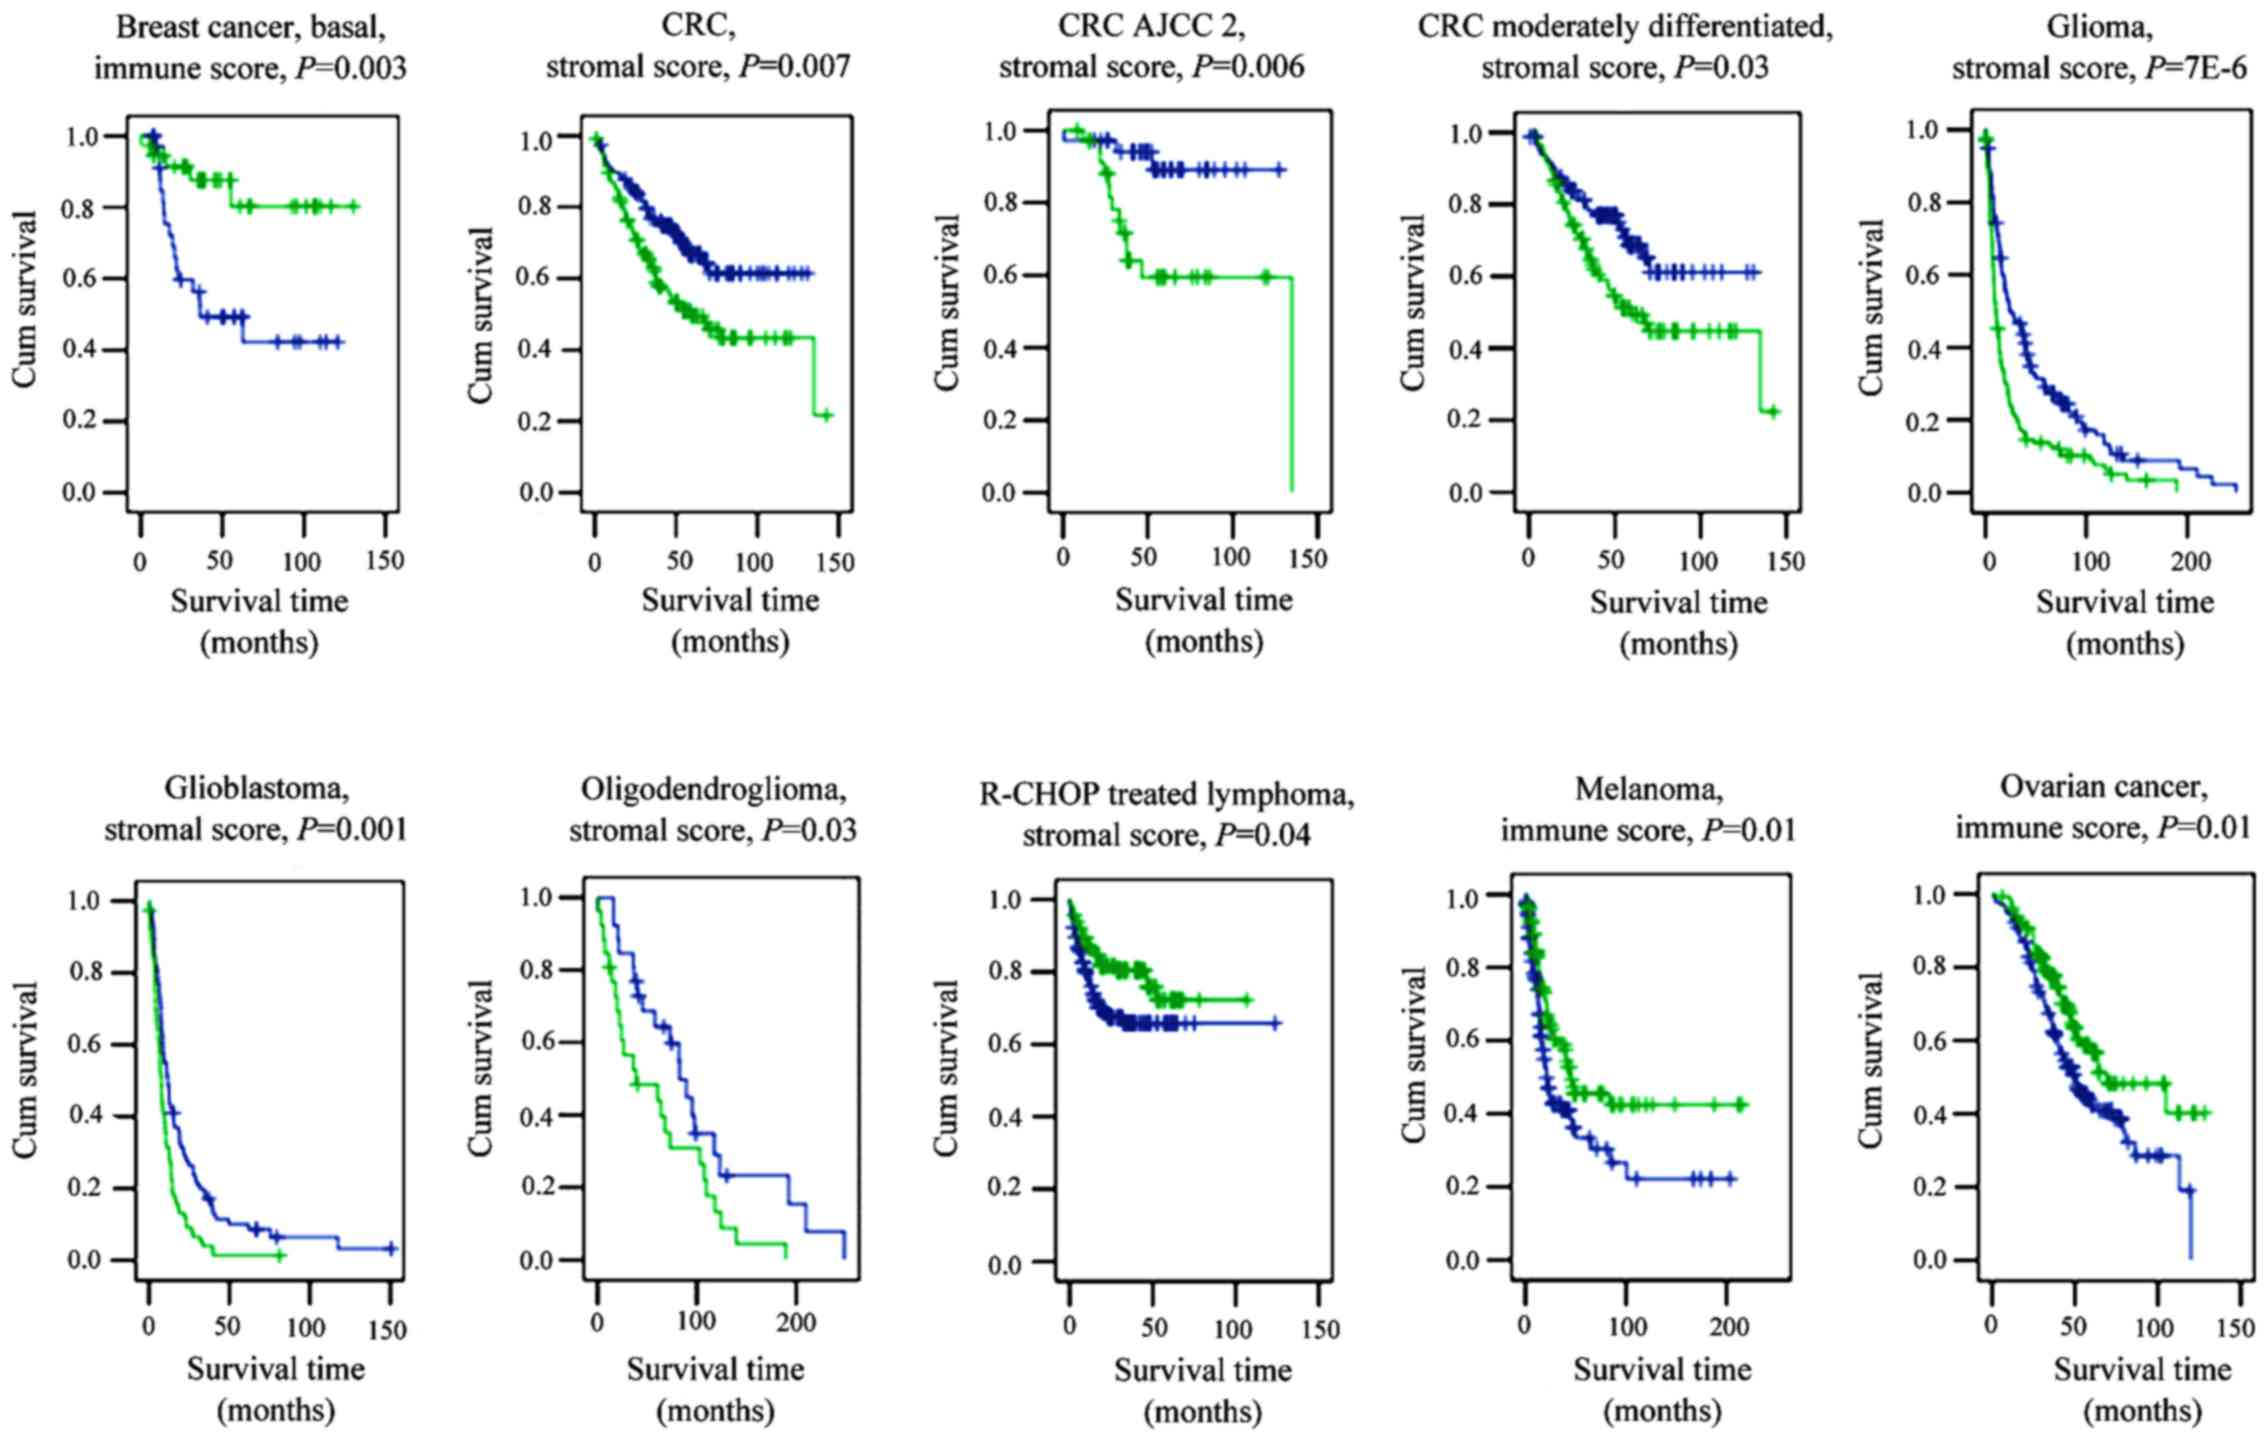 Transcriptome Derived Stromal And Immune Scores Infer Clinical Outcomes Of Patients With Cancer